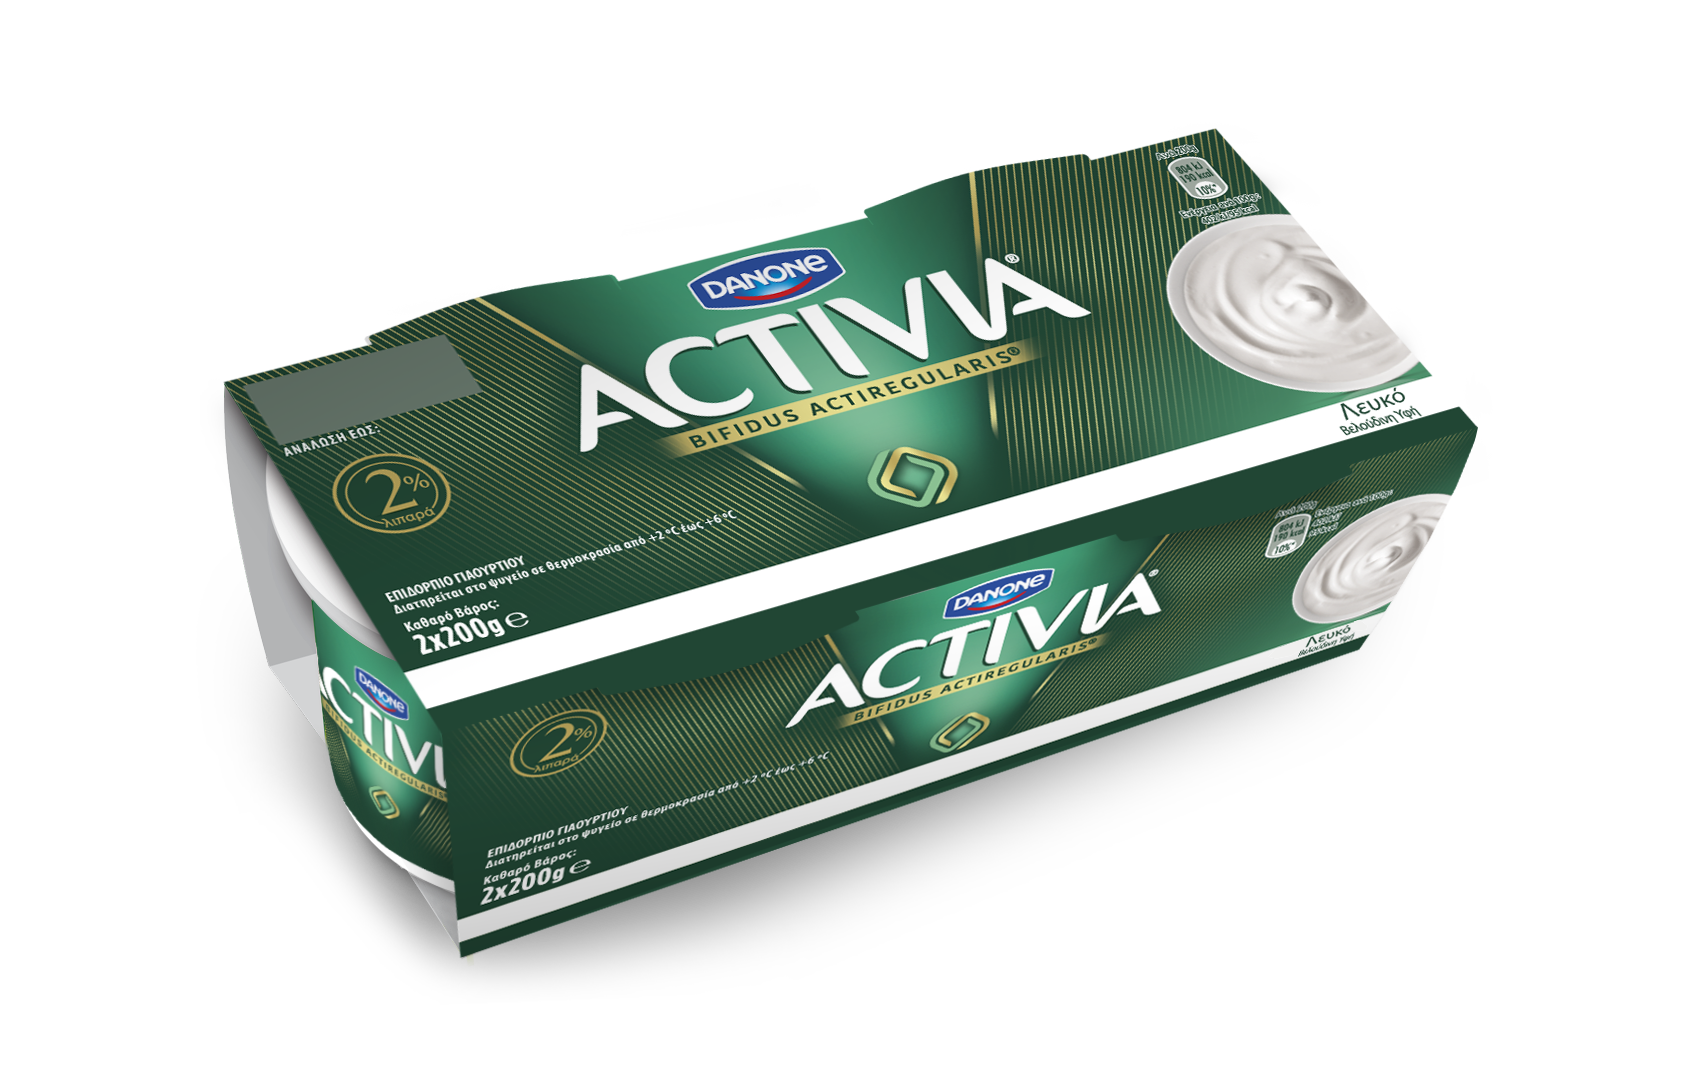 activia_3x200g_lefko.png